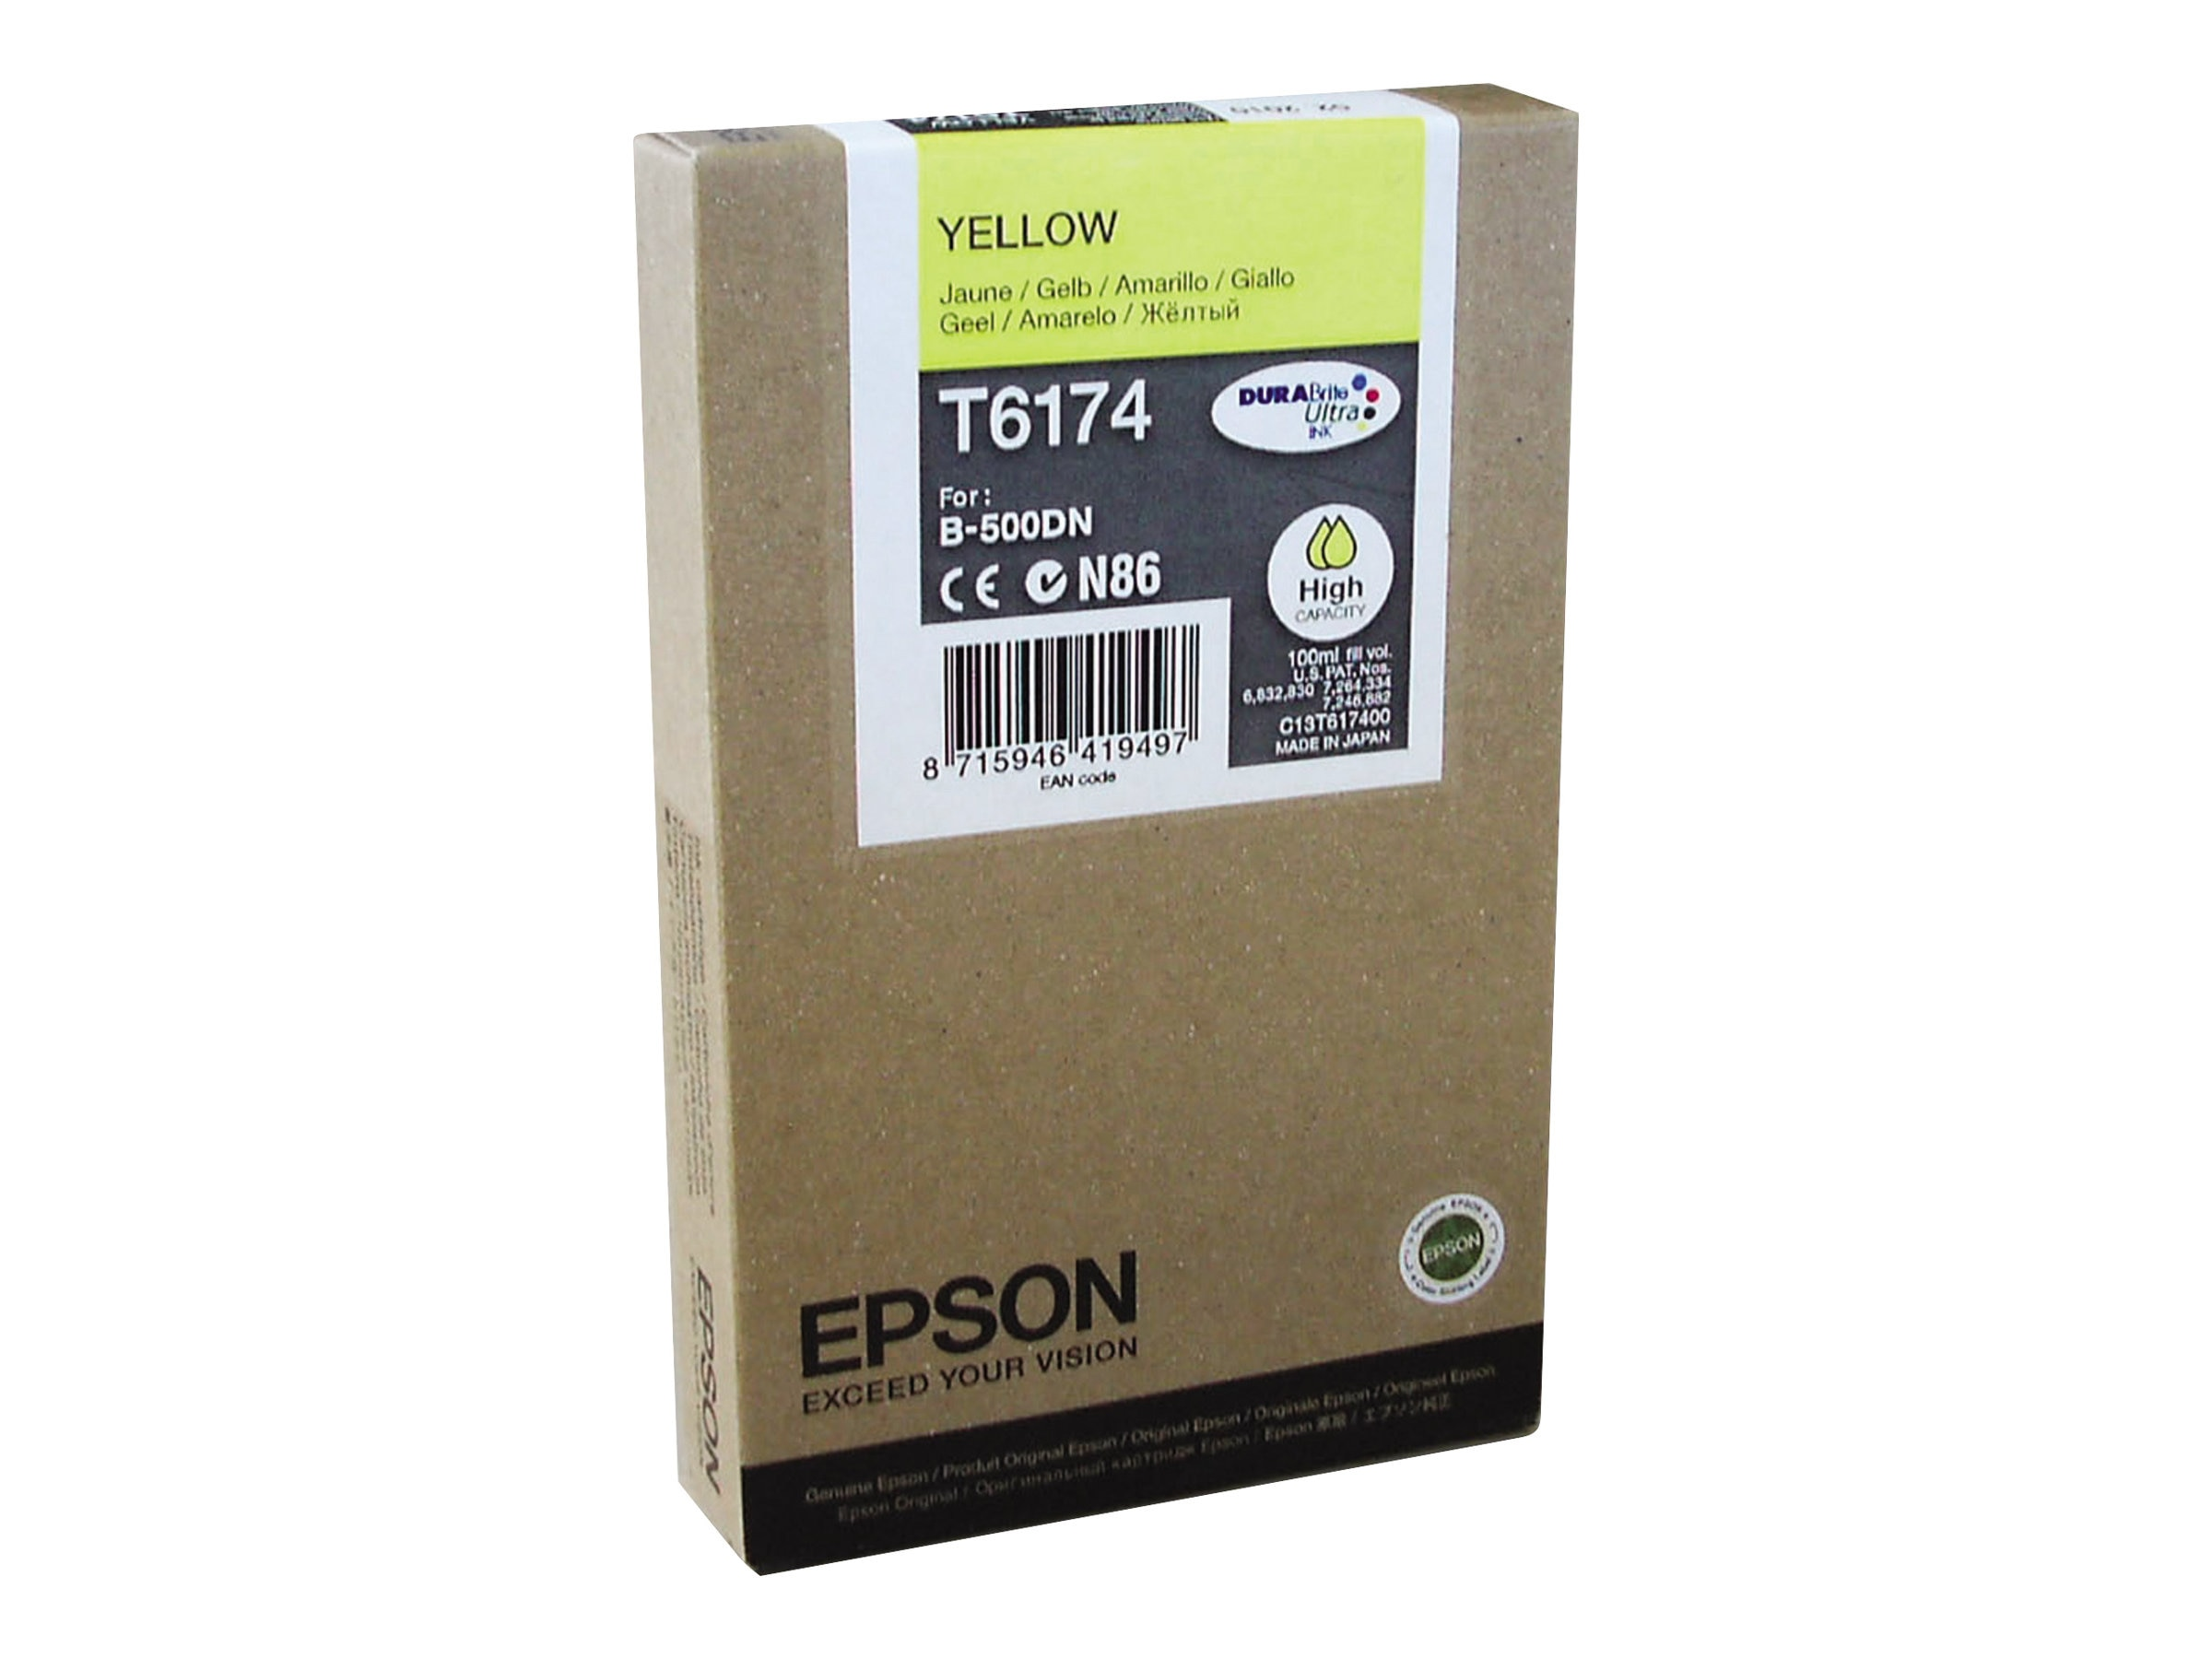 Epson Yellow High Capacity Ink Cartridge for B-500DN Color Business Ink Jet Printer